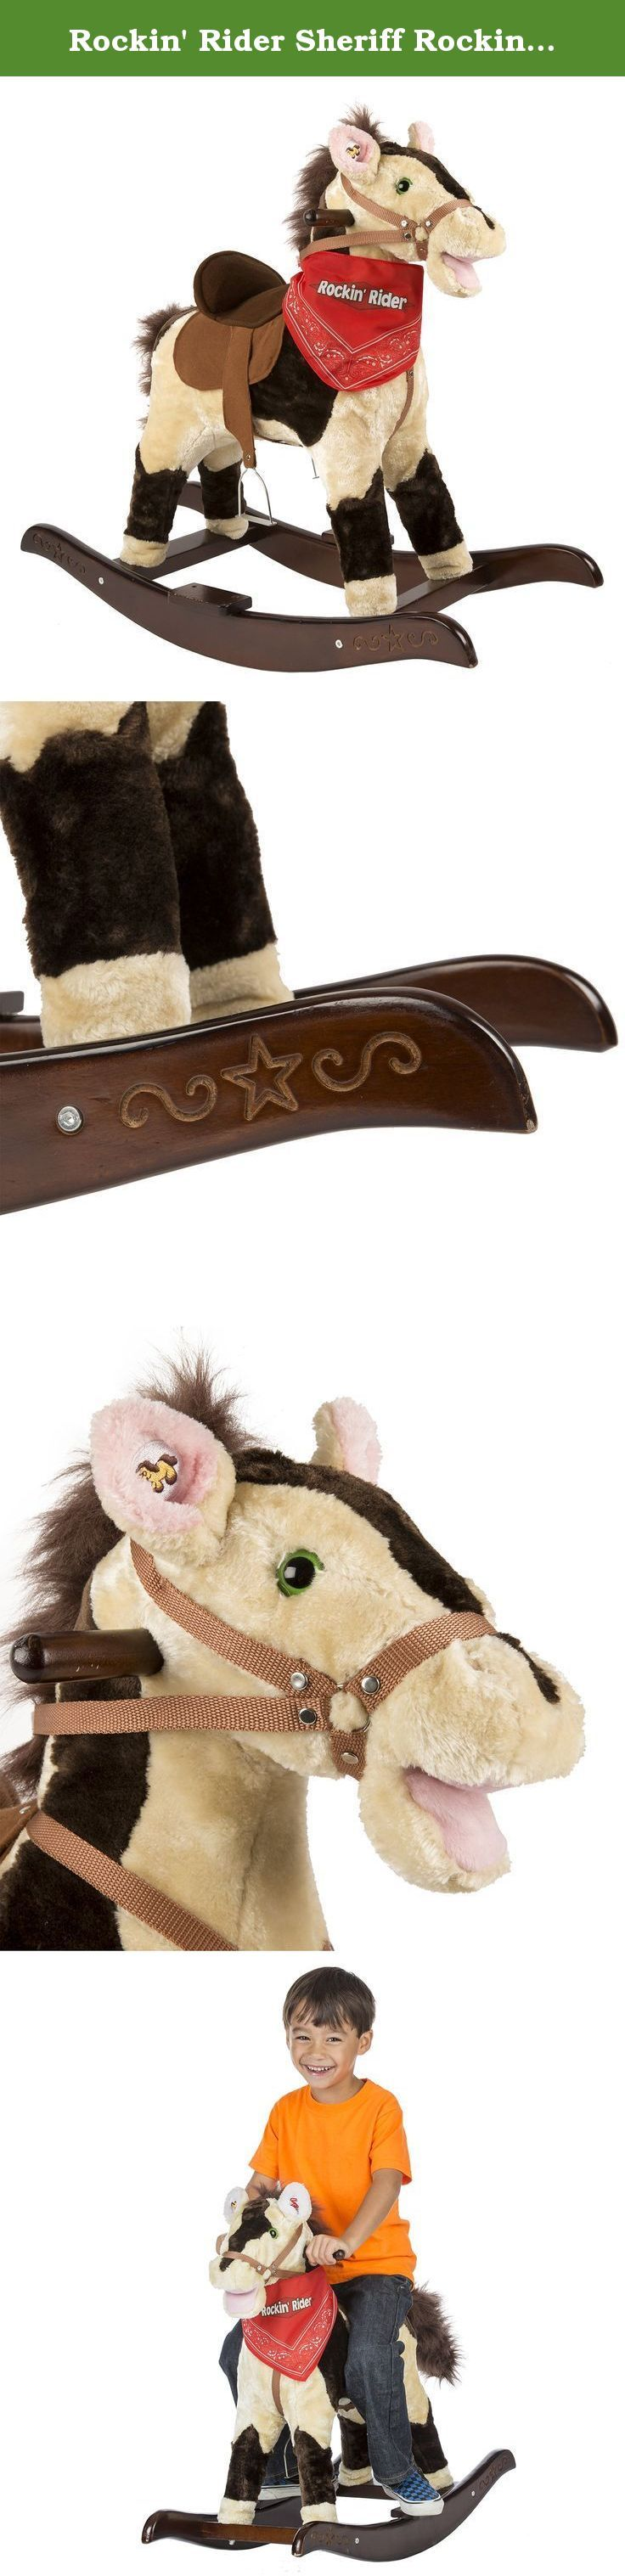 """Rockin' Rider Sheriff Rocking Horse. Sheriff is a classic rocking horse that features soft two-tone plush over a lightweight and sturdy foam core. He sits on a beautiful wooden base with detailed engraving and a step. With a press of his ears he sings the exclusive """"I'm a Little Pony"""" song, says 6 fun phrases, and makes realistic horse sounds. Your child will be amazed by Sheriff's moving mouth and swishing tail and removable bandana they can wear! Other features include full-body nylon..."""